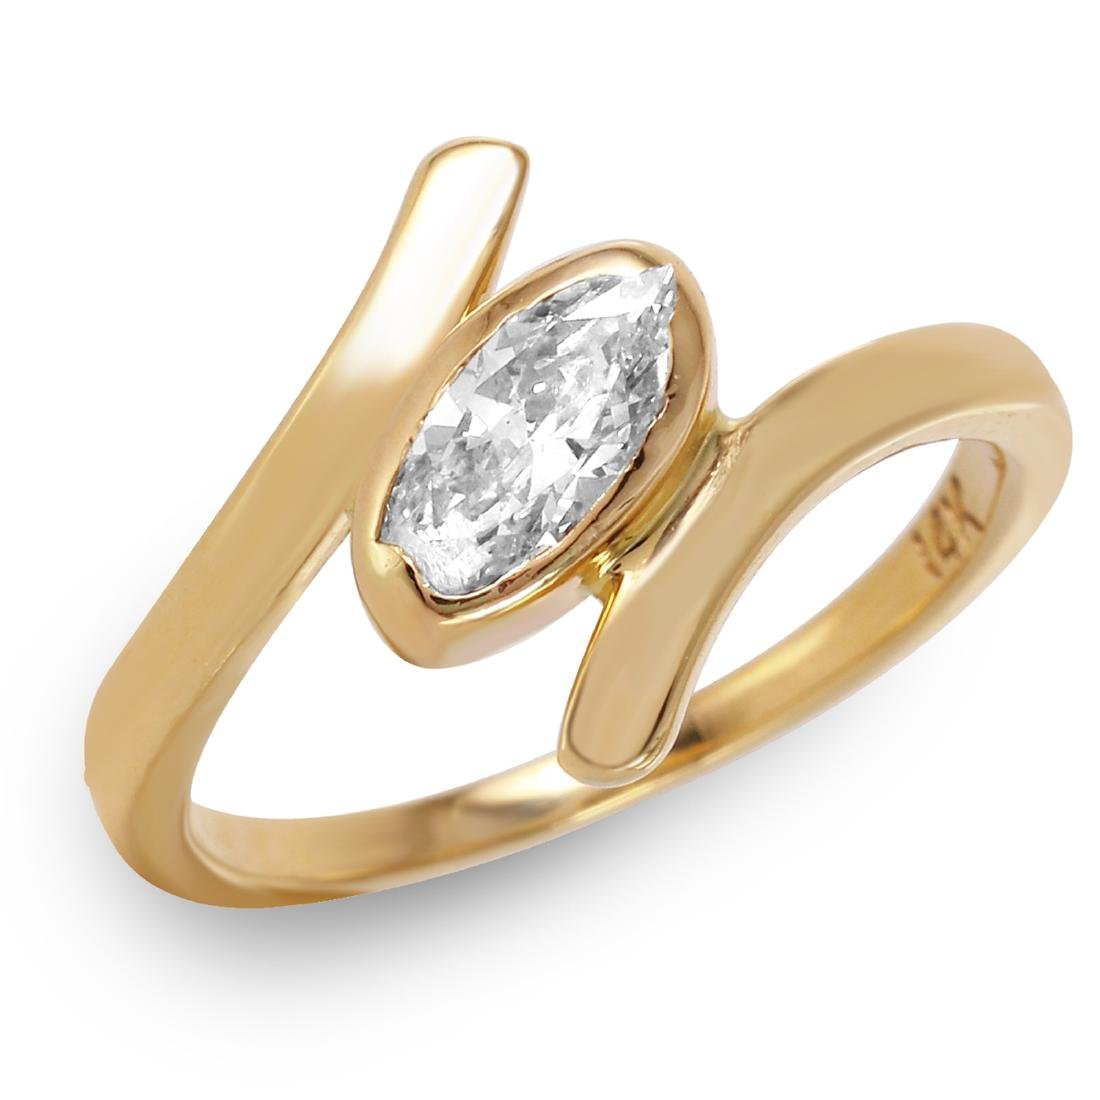 14KT Yellow Gold 0.40ctw Diamond Solitaire Ring Size